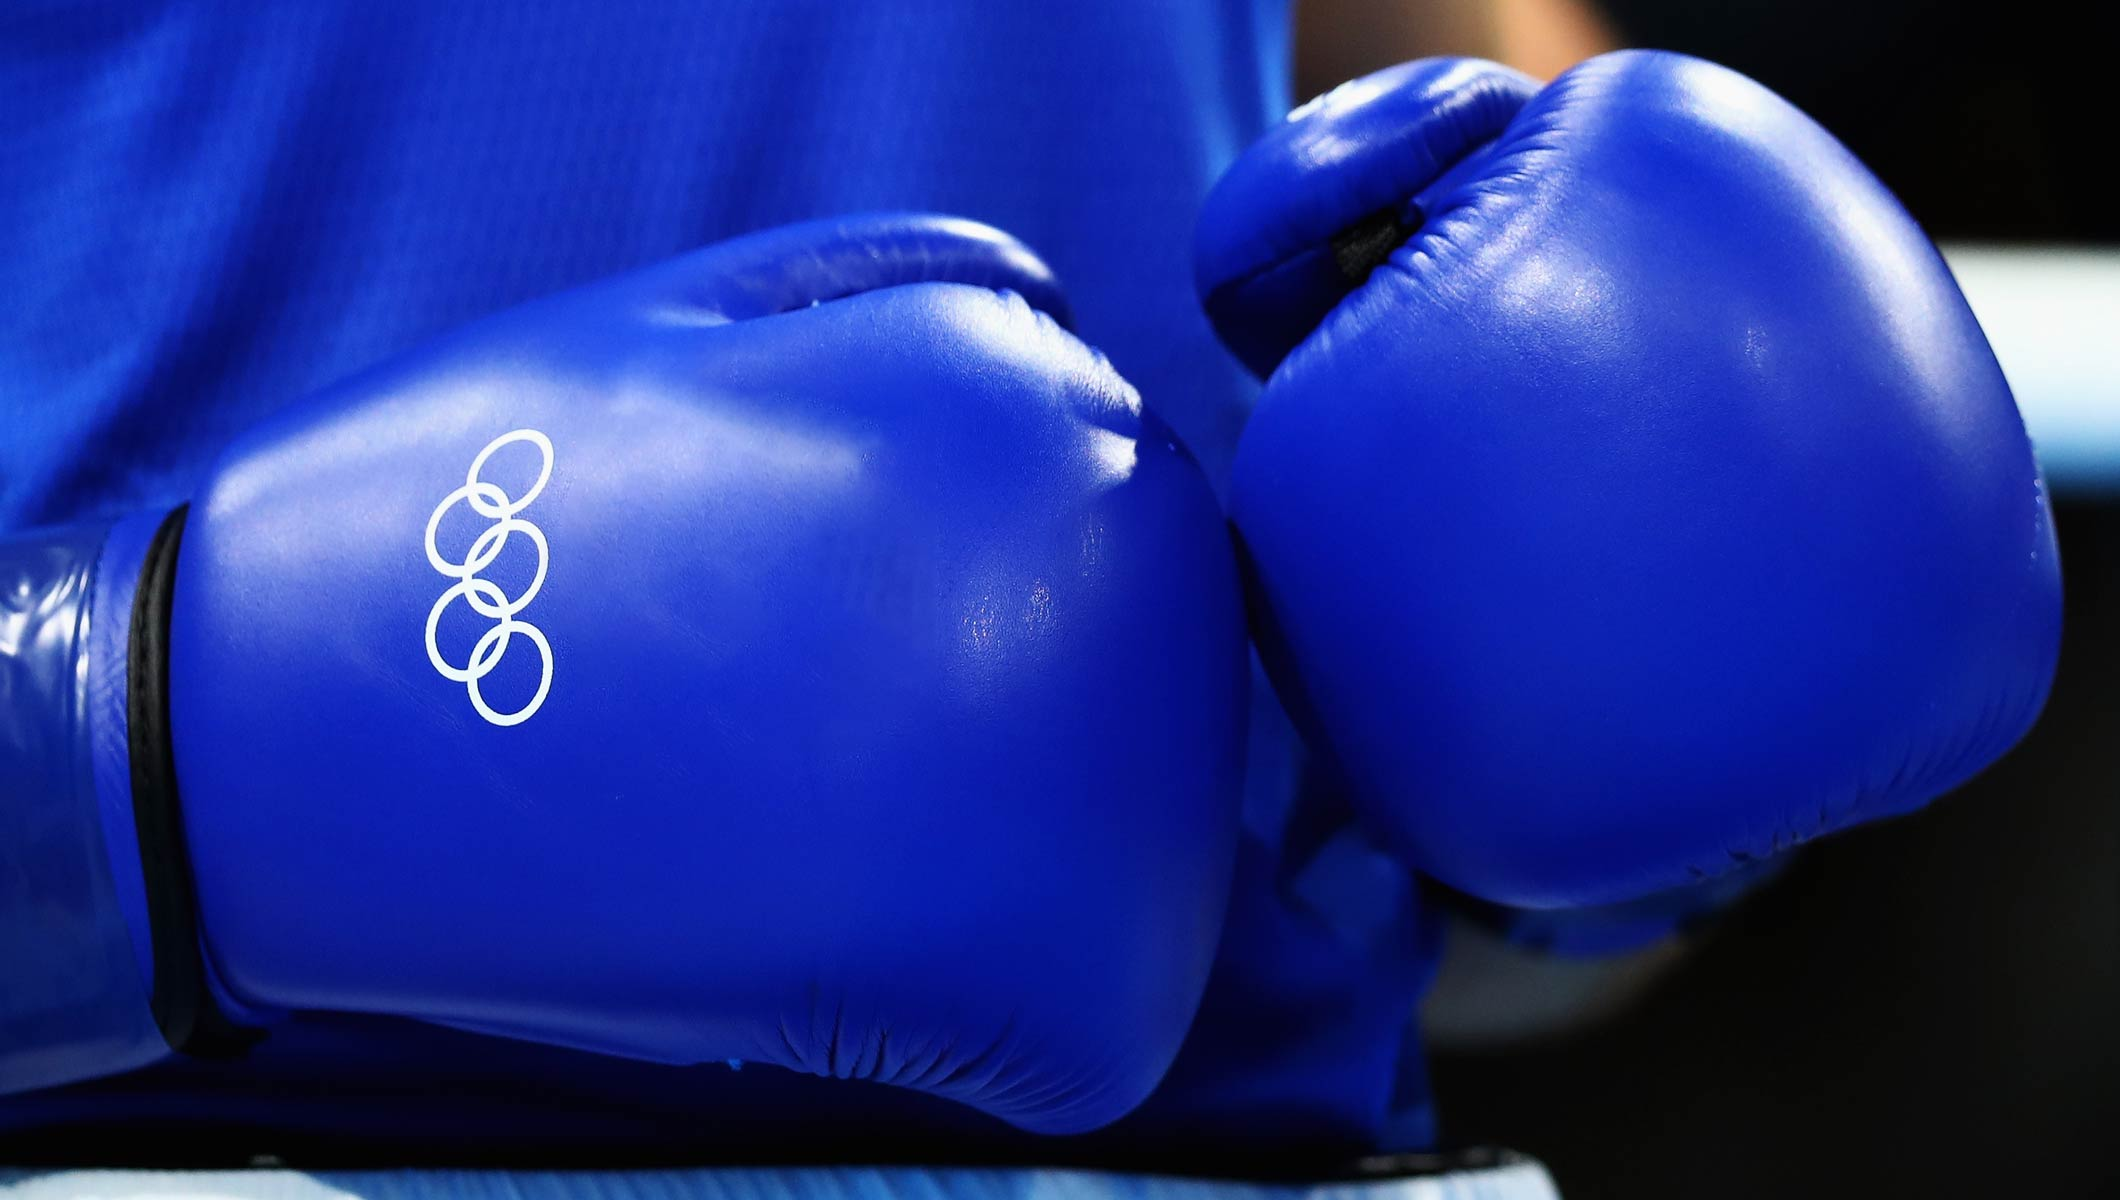 Blue boxing gloves with the Olympic rings